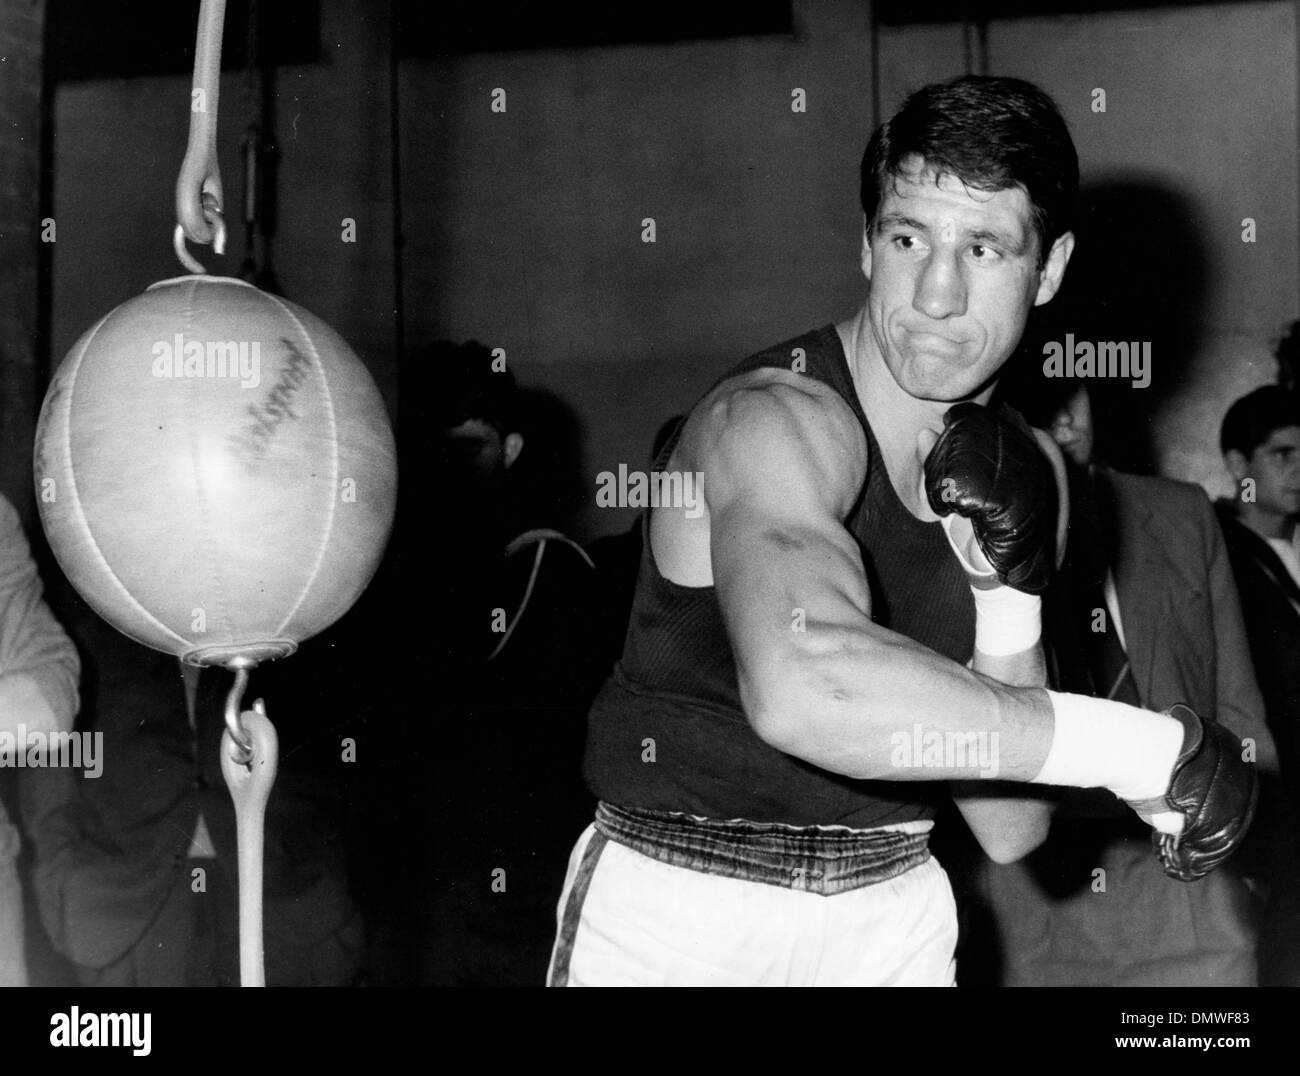 Oct 12 1965 rome italy luis folledo born october 10 1937 is a spanish middleweight boxing champion from madrid pictured folledo training at the